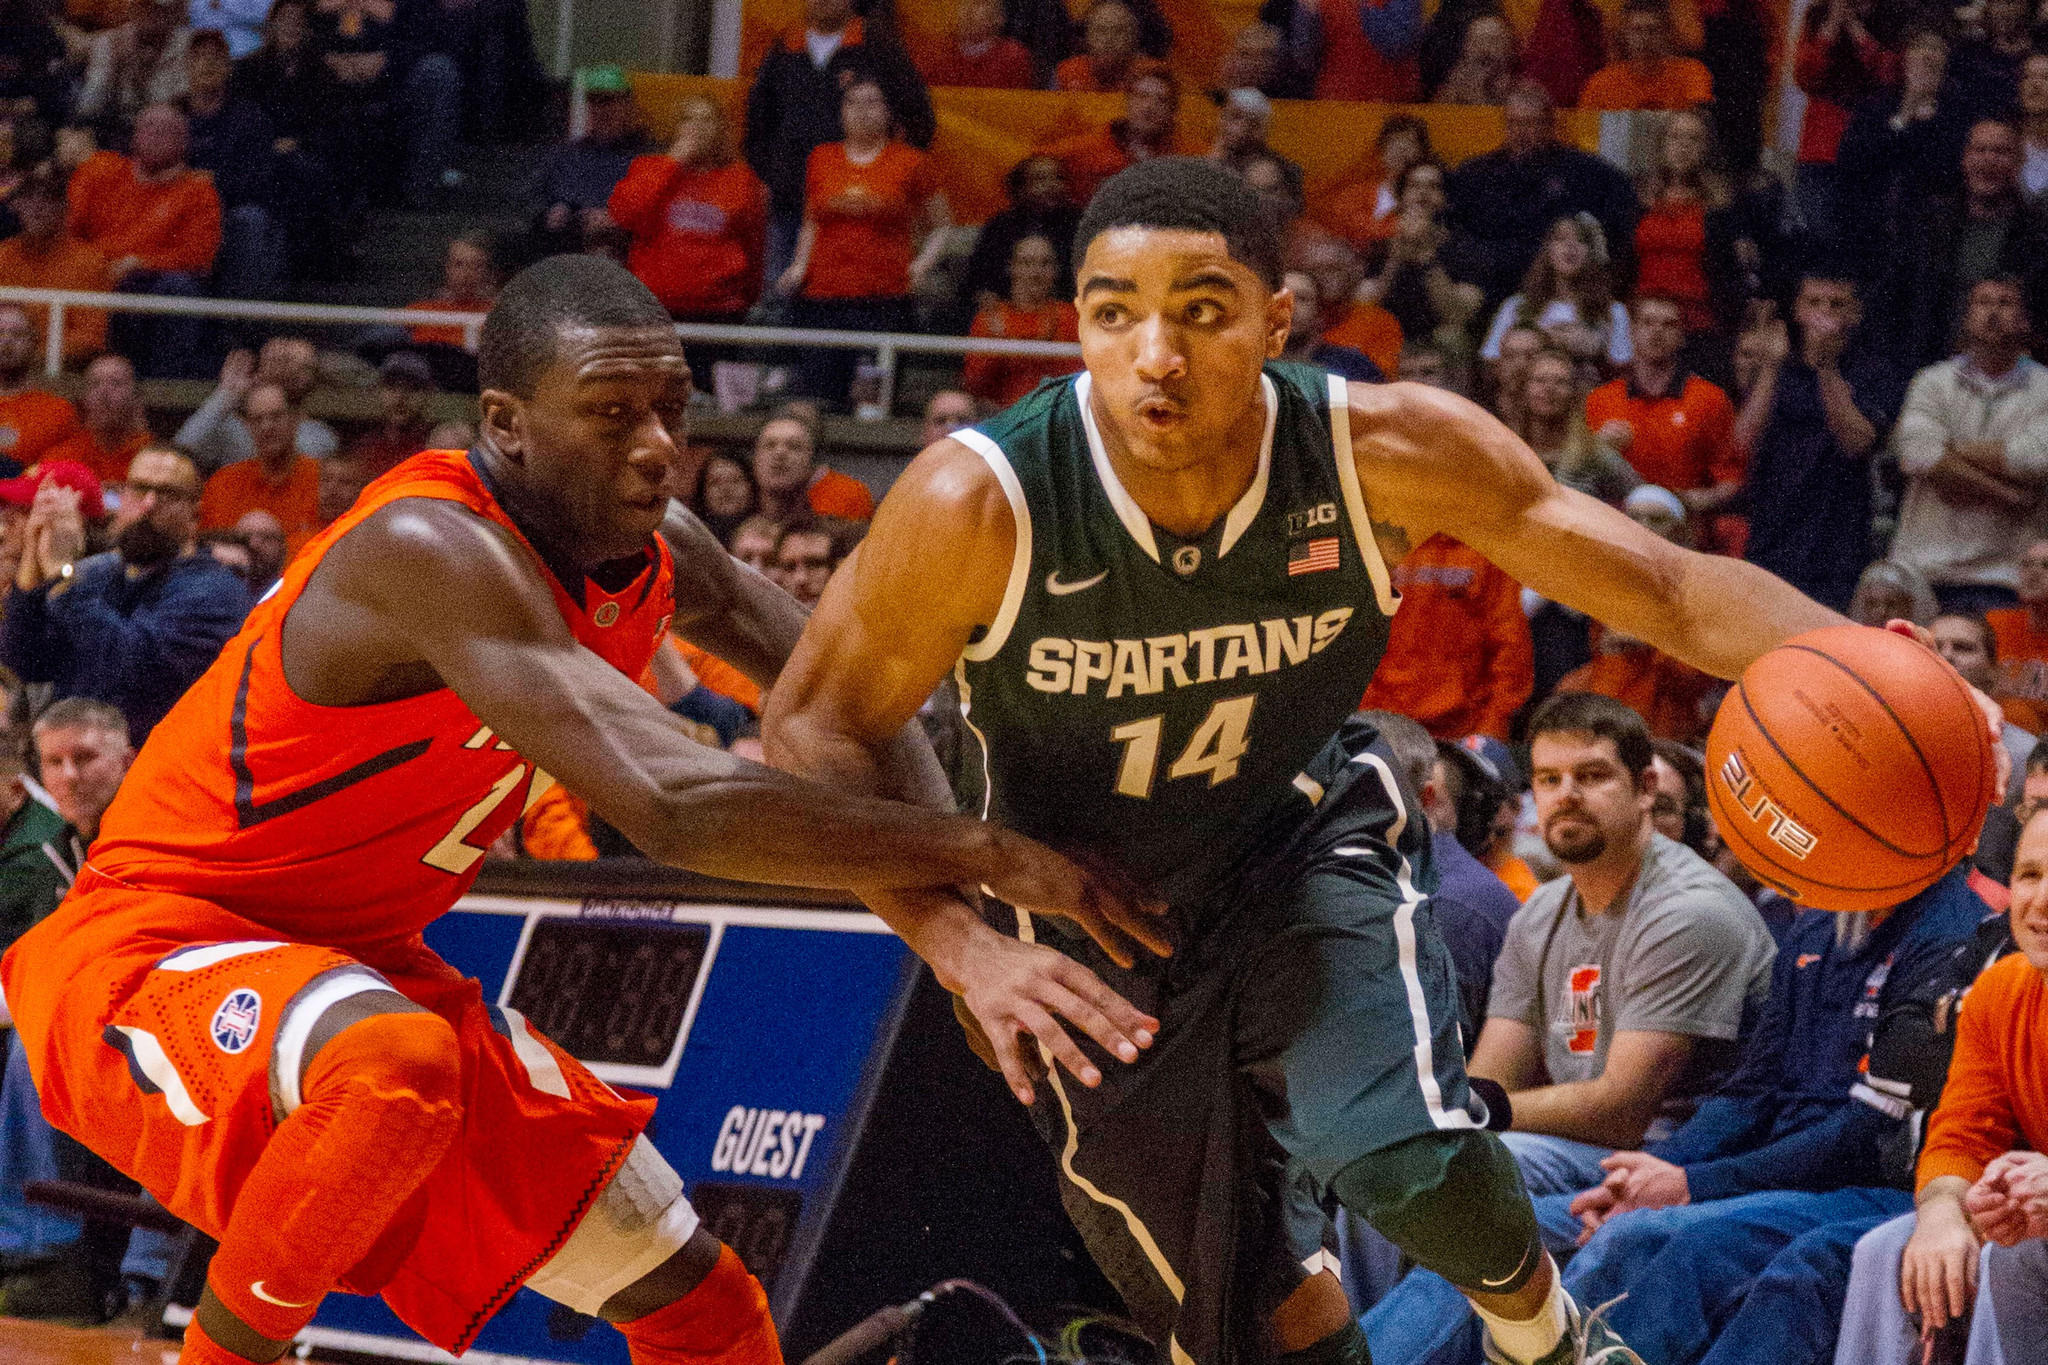 Michigan State Spartans guard Gary Harris (14) dribbles the ball around Illinois Fighting Illini guard Kendrick Nunn (25) in the second half of the game at State Farm Center.